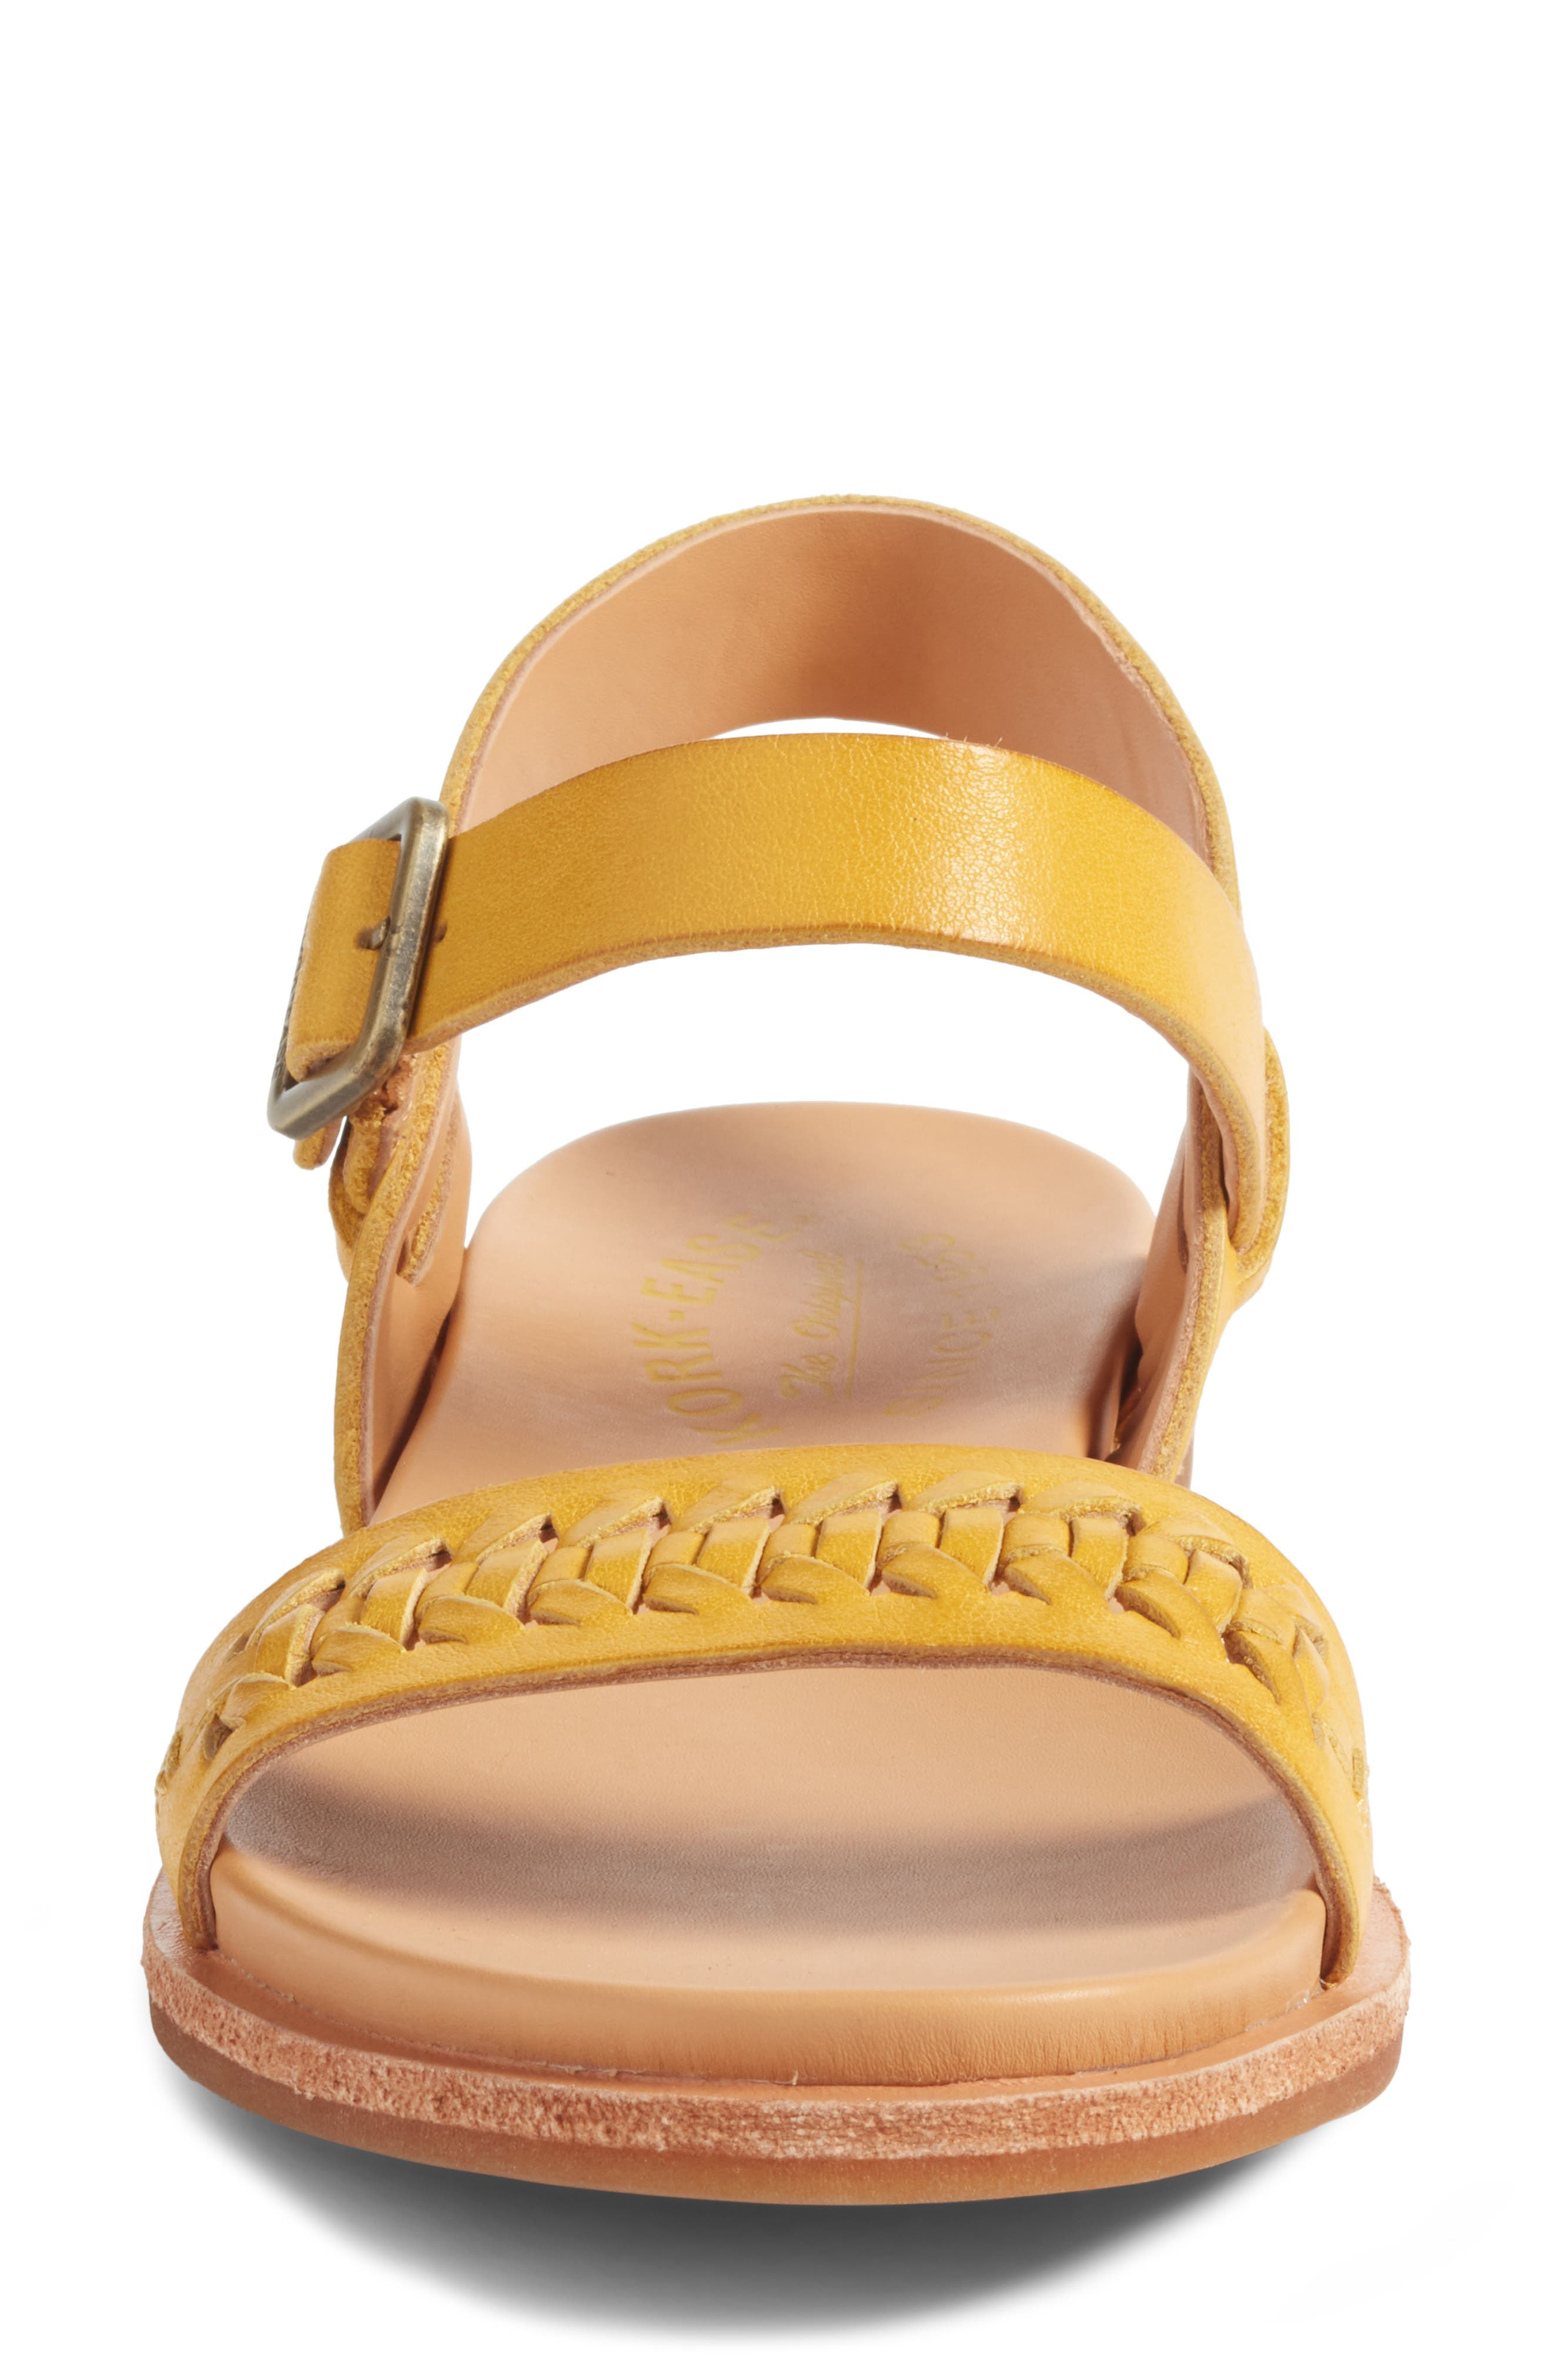 Yucca Braid Sandal,                             Alternate thumbnail 4, color,                             Yellow Leather